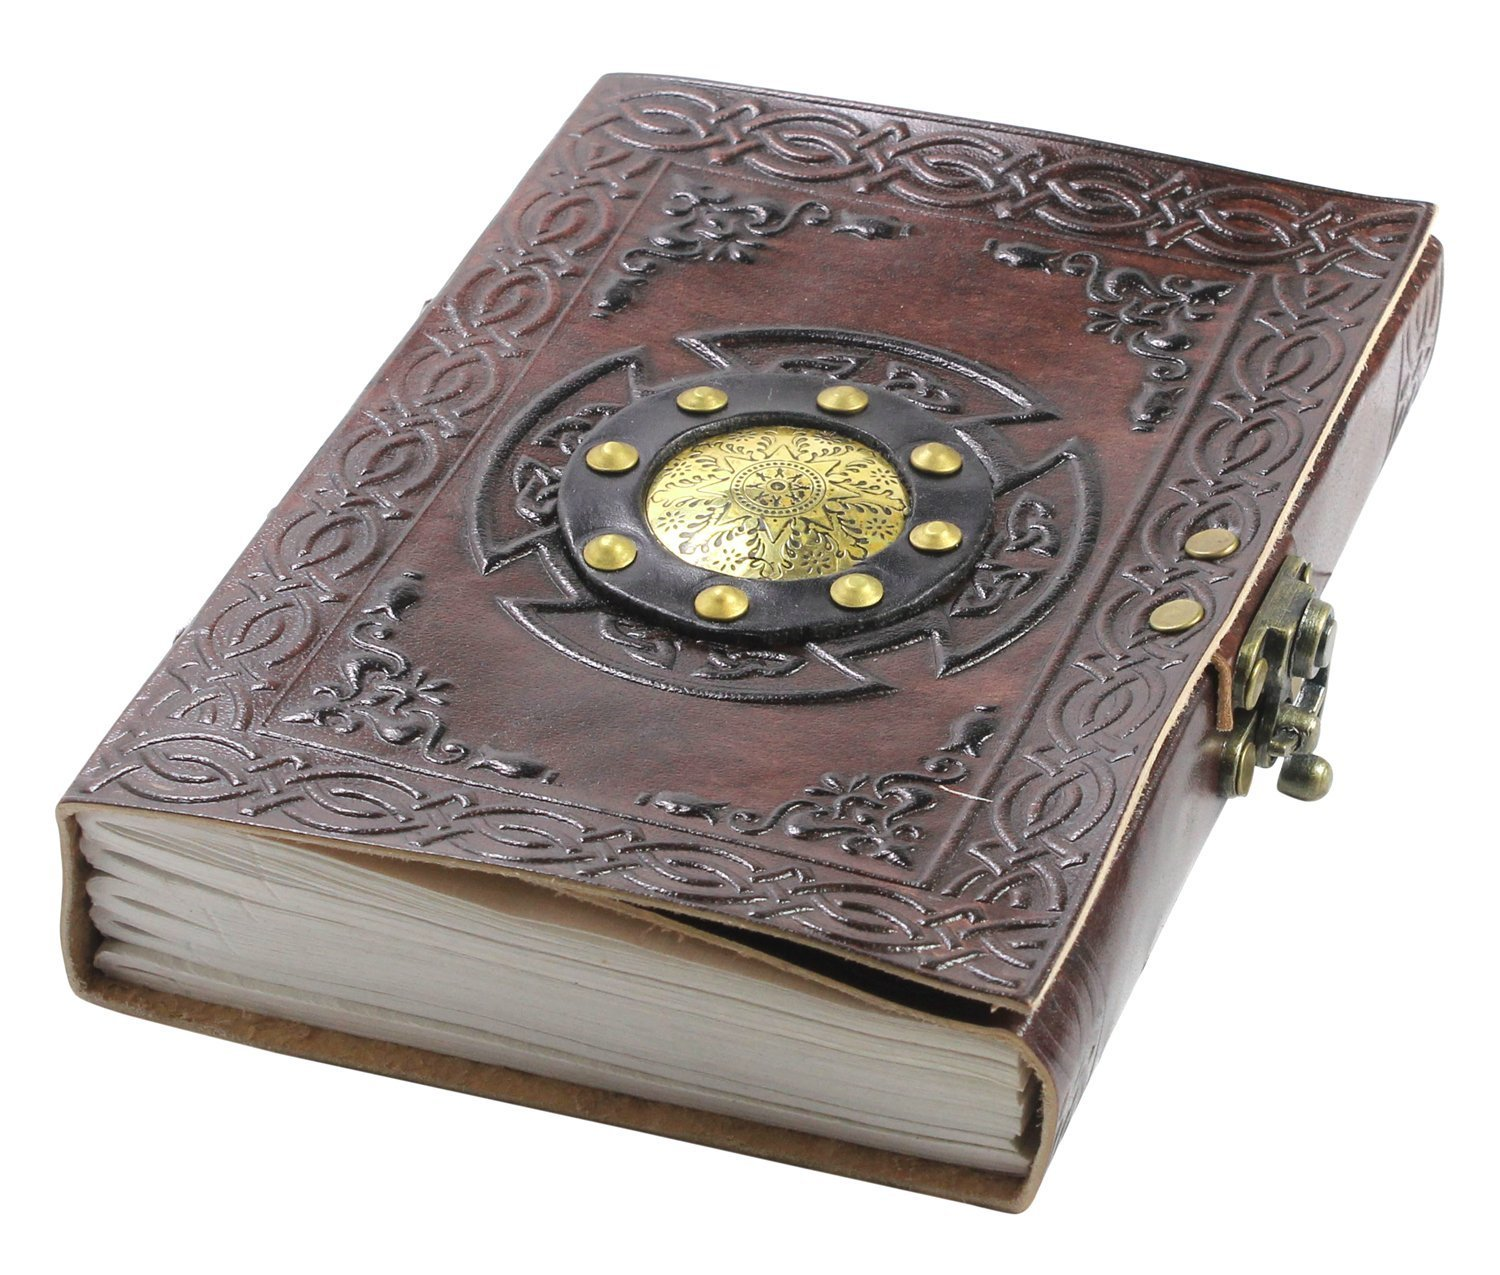 Spell Book of Shadows - Unique Leather Bound Blank Grimoire Journal Notebook Diary With Lock | A5 (6 x 8 inches)